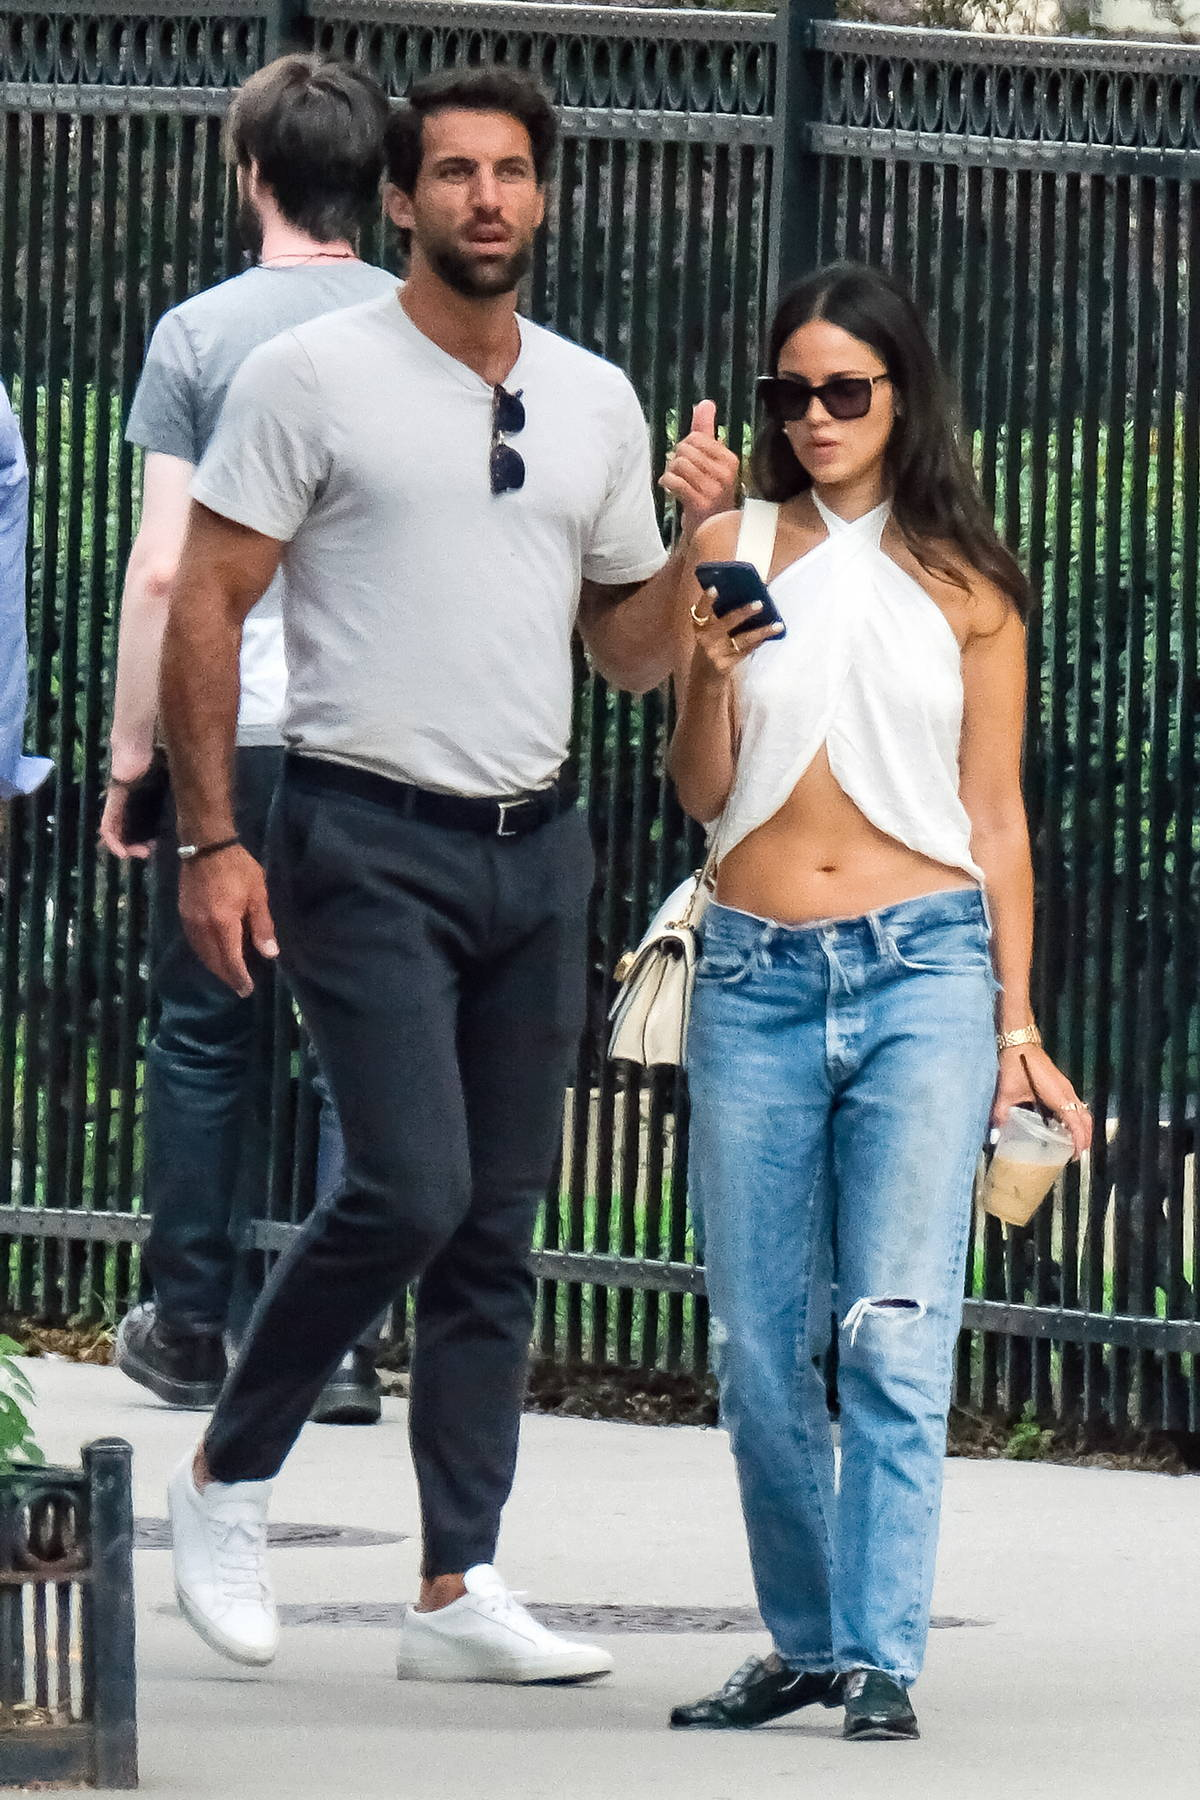 Eiza Gonzalez flaunts her midriff while stepping out with boyfriend Paul Rabil in New York City